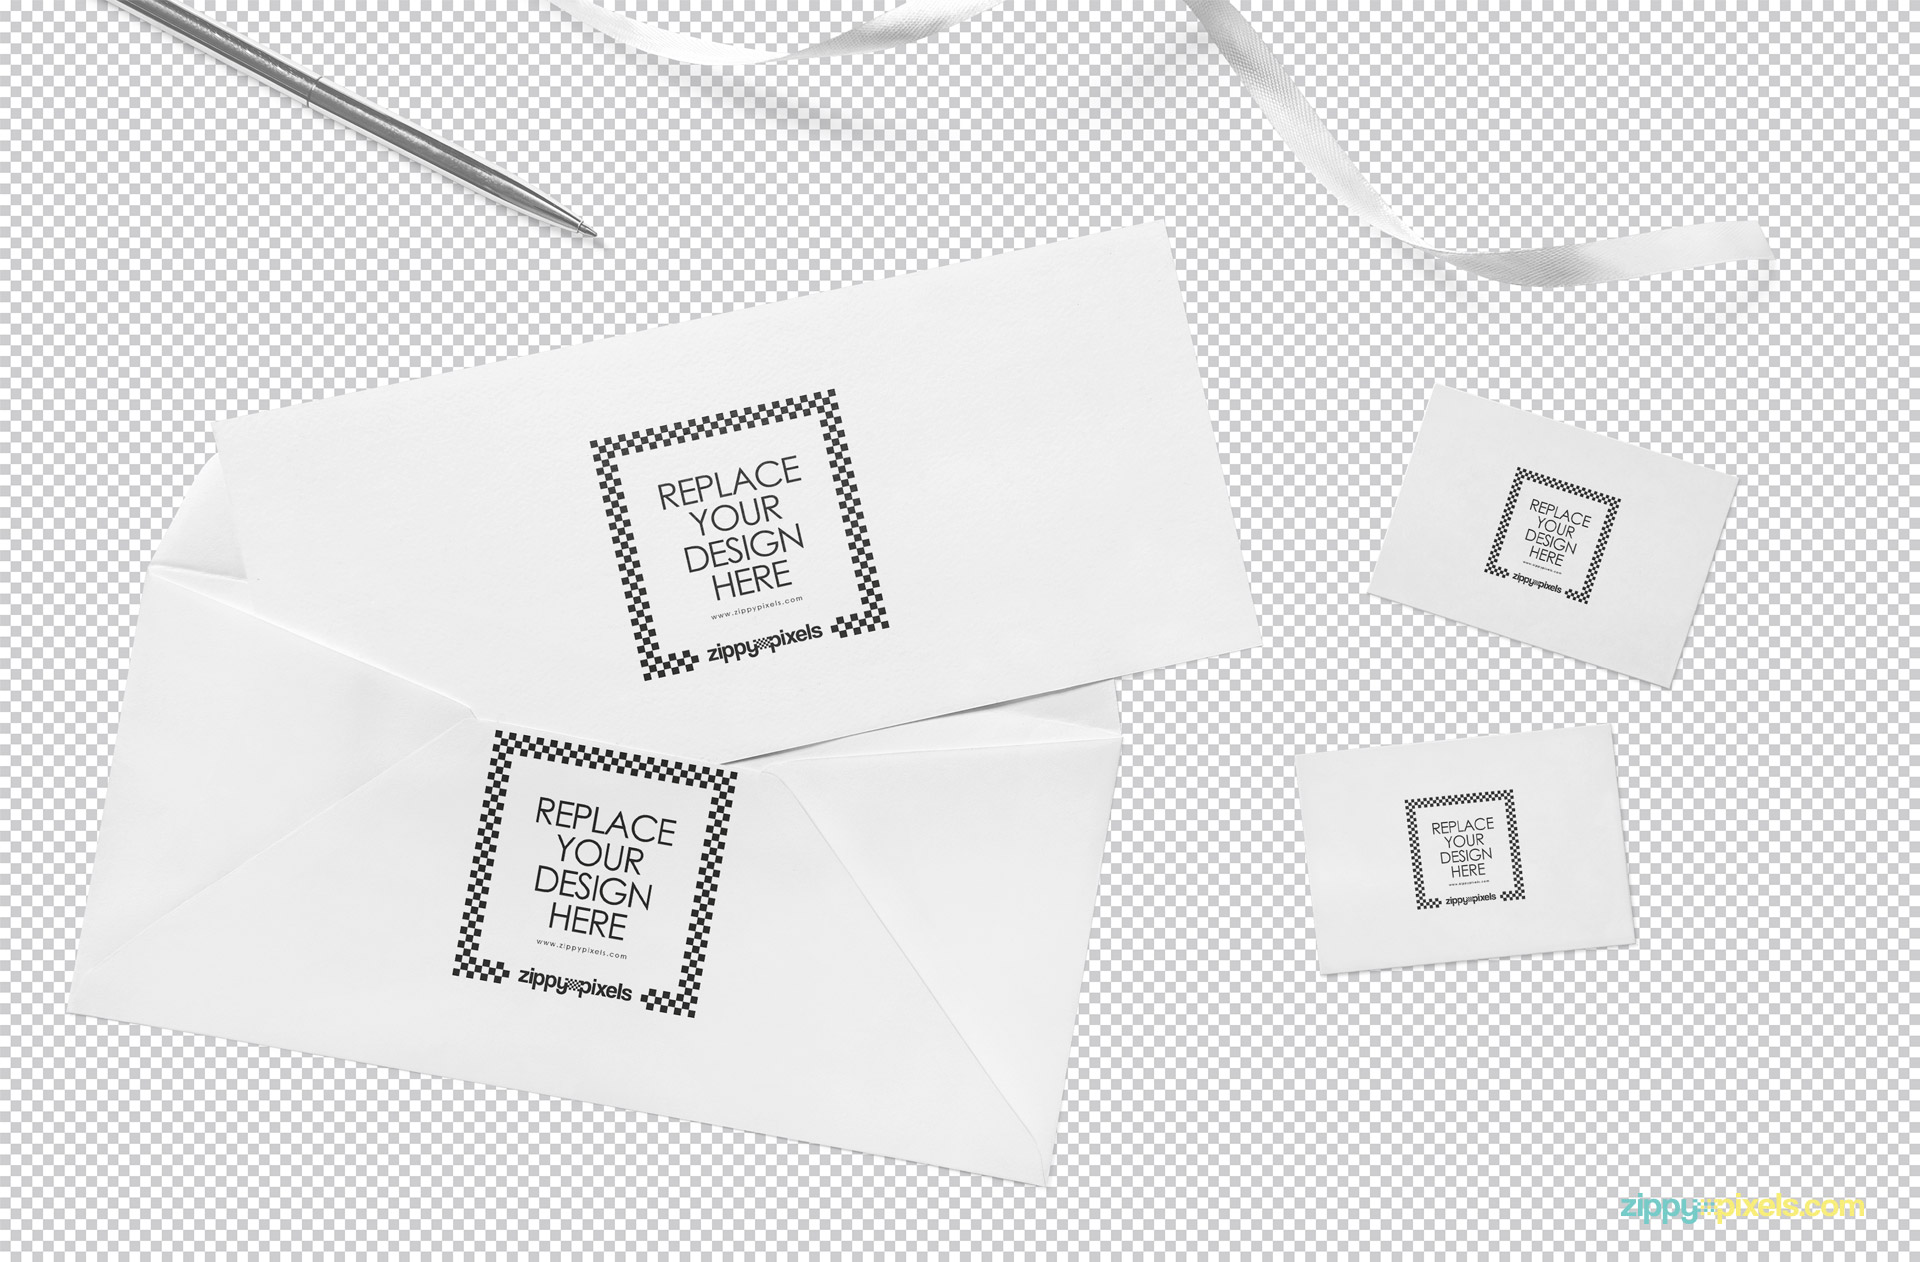 Use Photoshop to edit this Splendid invitation mockup PSD.